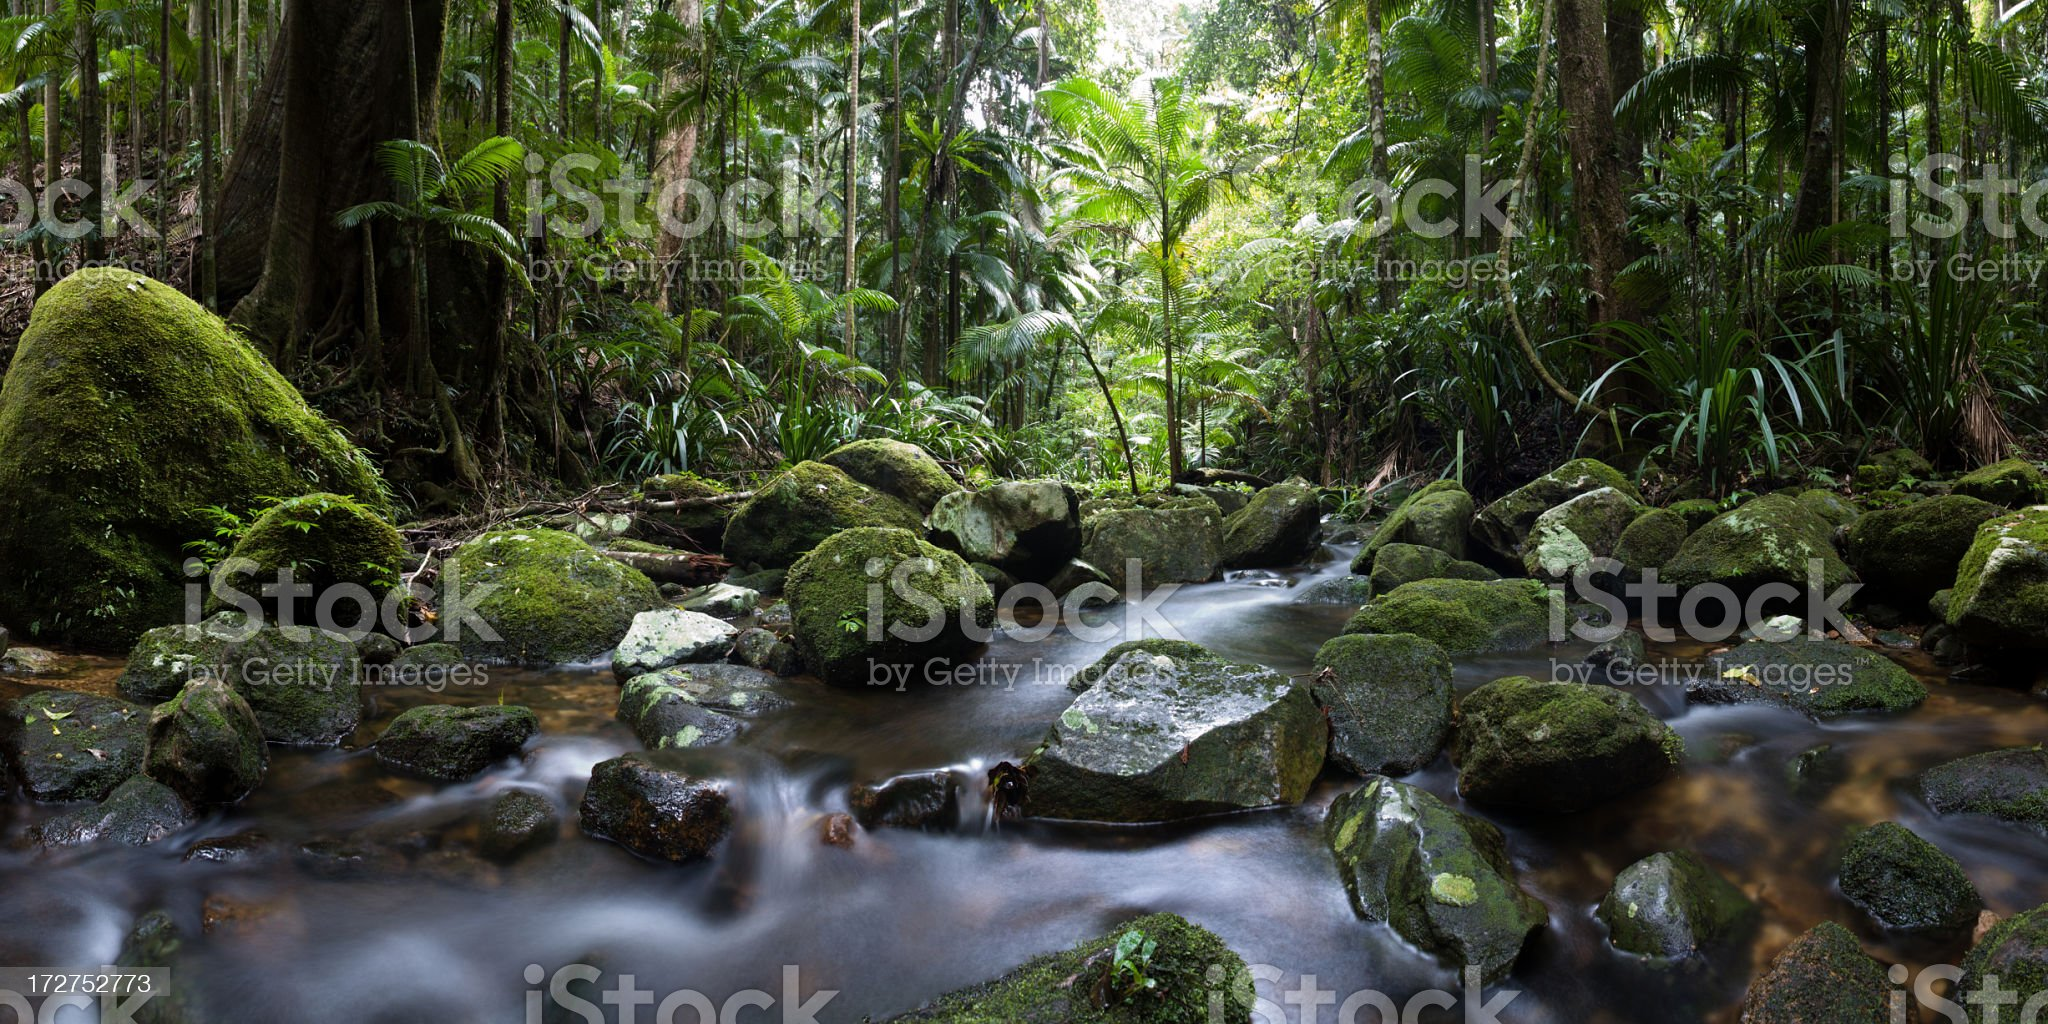 Nightcap Ranges National Park Rainforest Panorama royalty-free stock photo